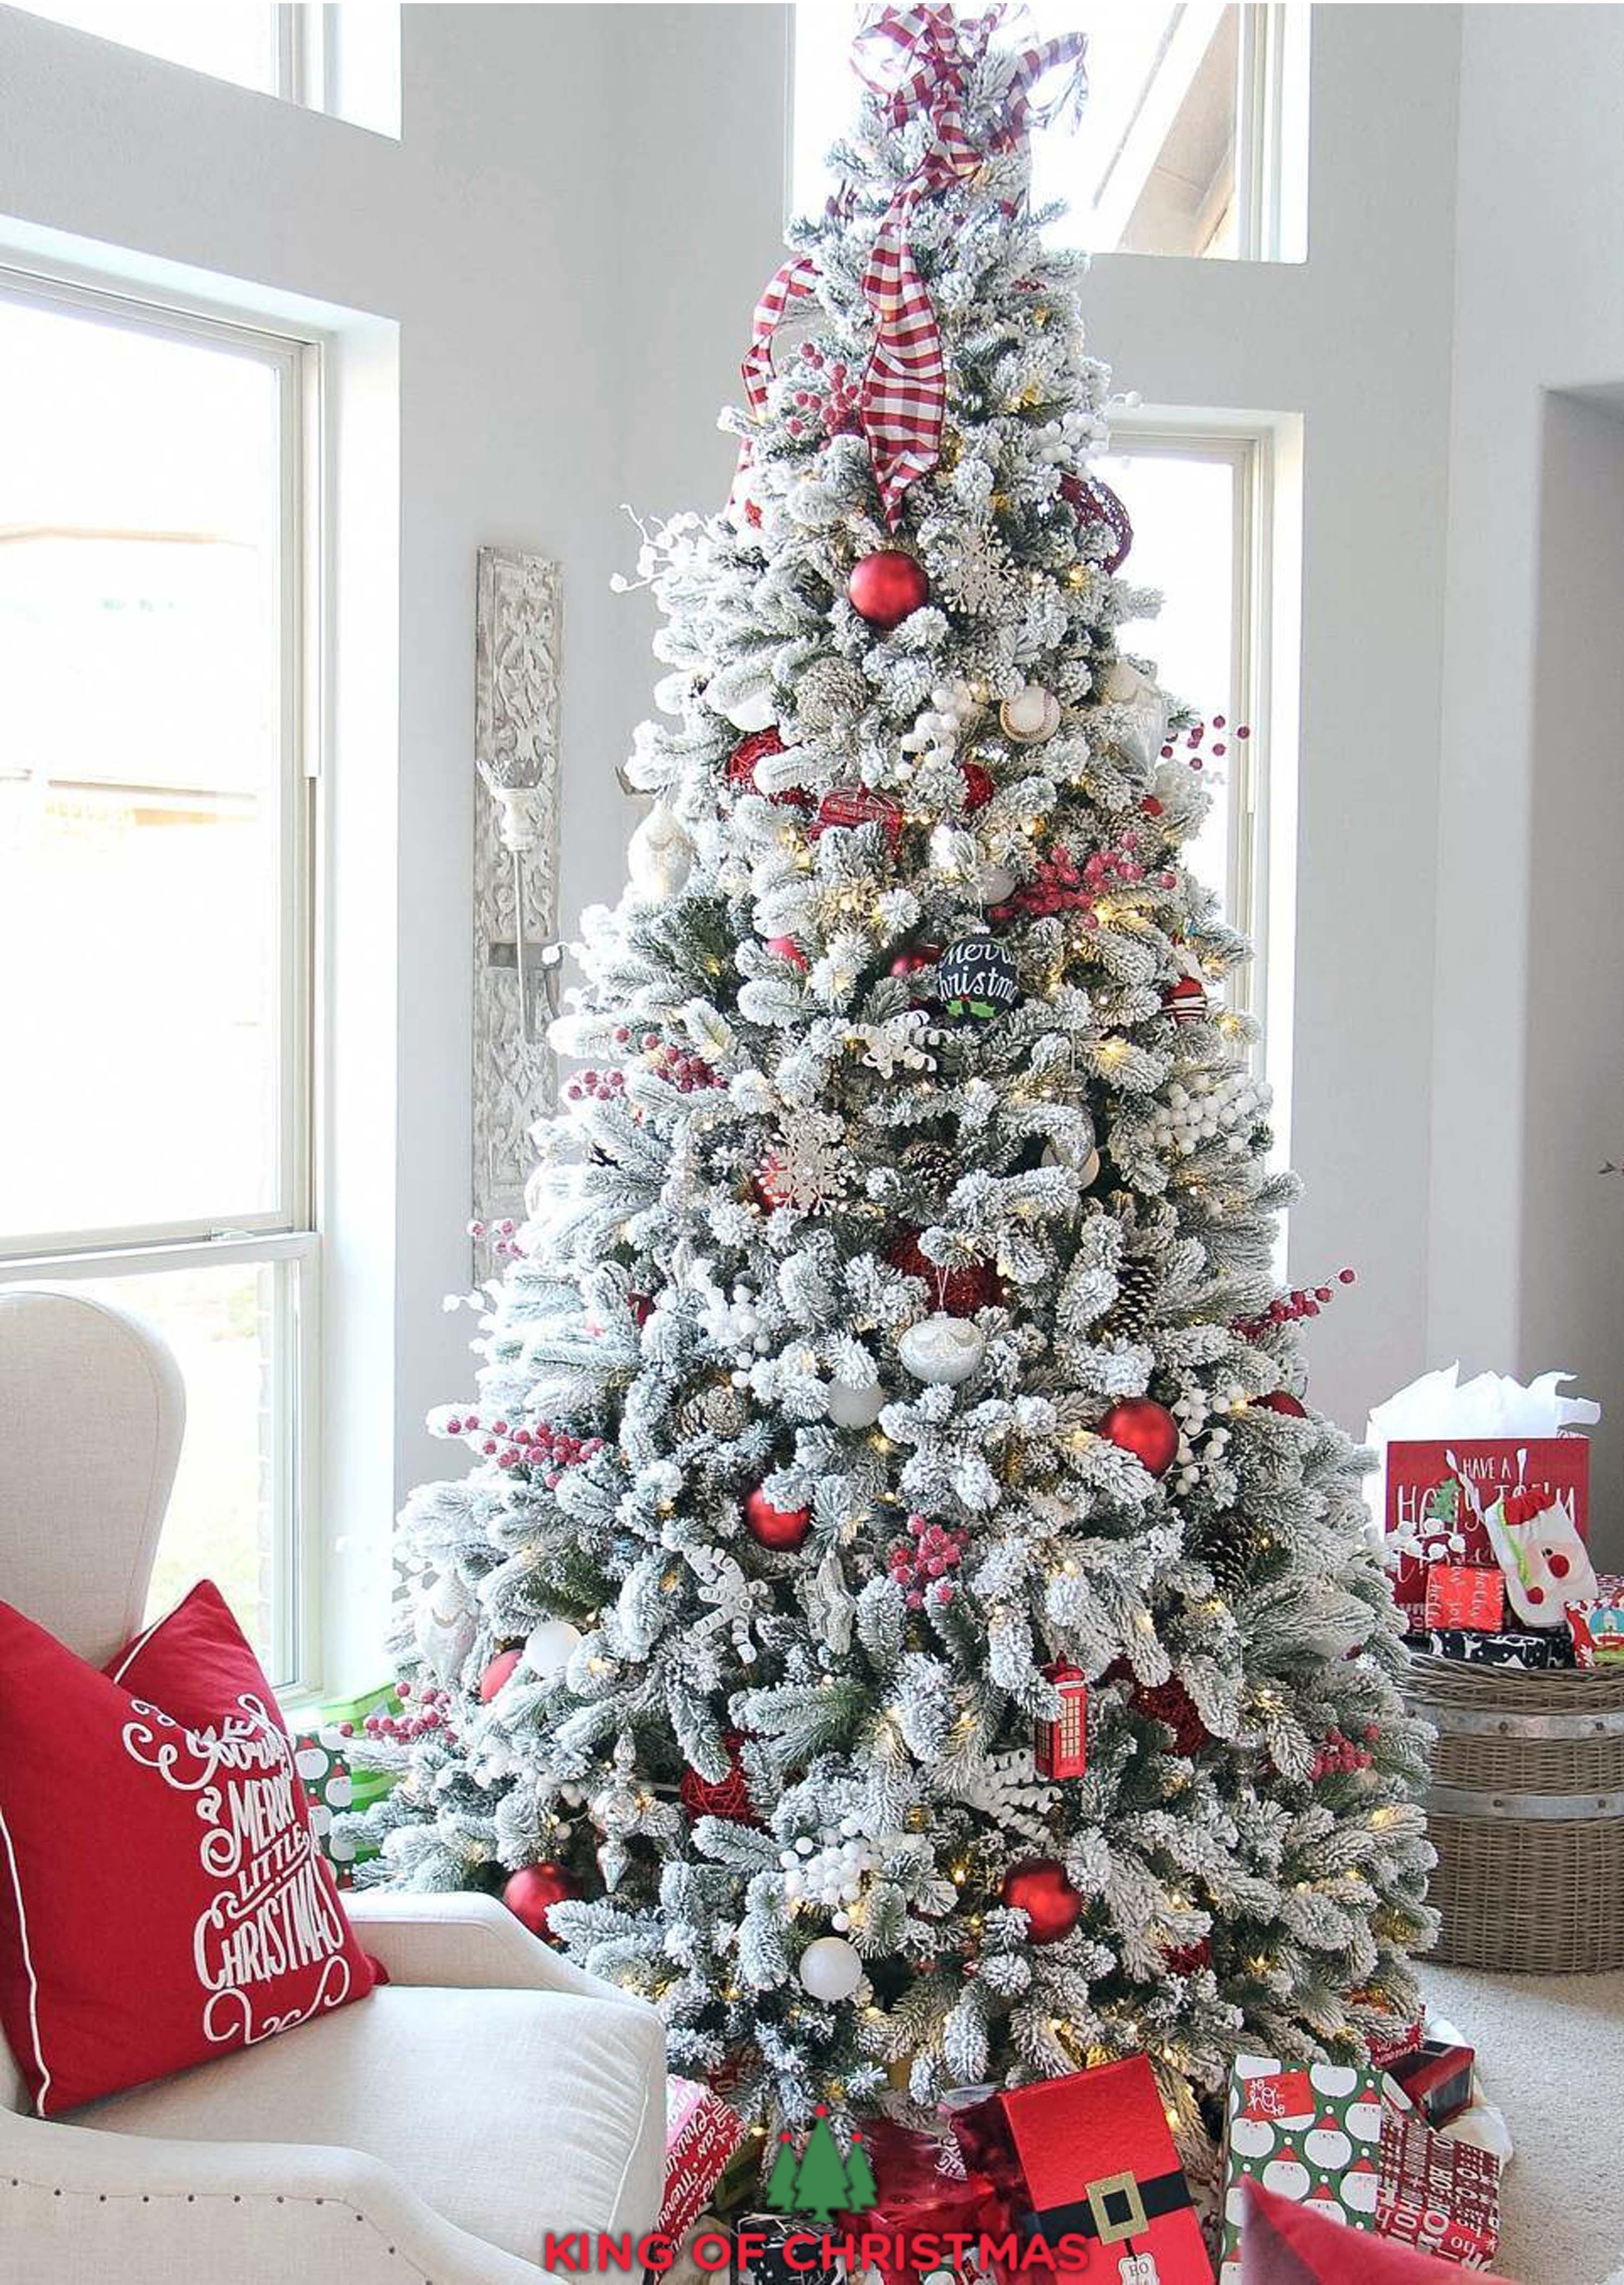 King Of Christmas Highest Quality Artificial Christmas Trees Realistic Christmas Trees Frosted Christmas Tree Flocked Christmas Trees